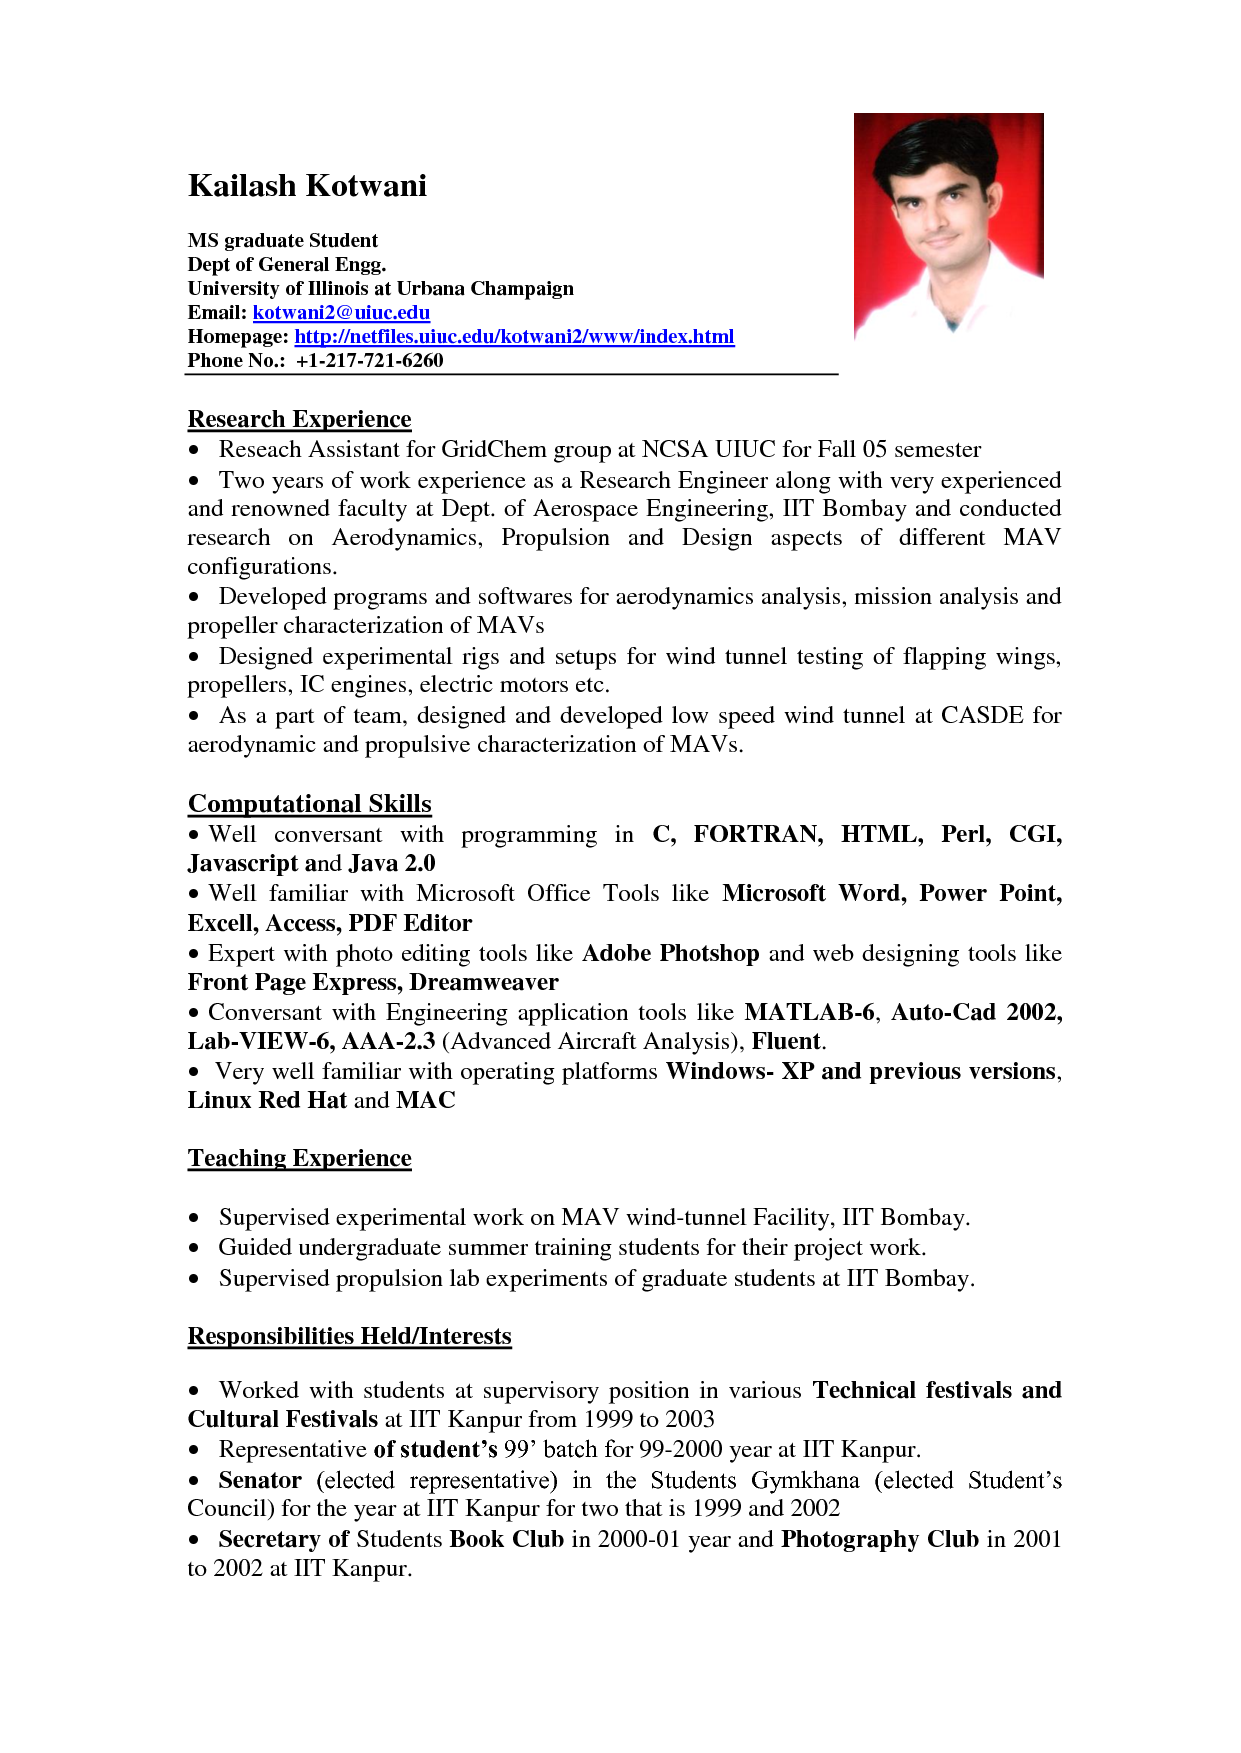 Sample resume with work experience